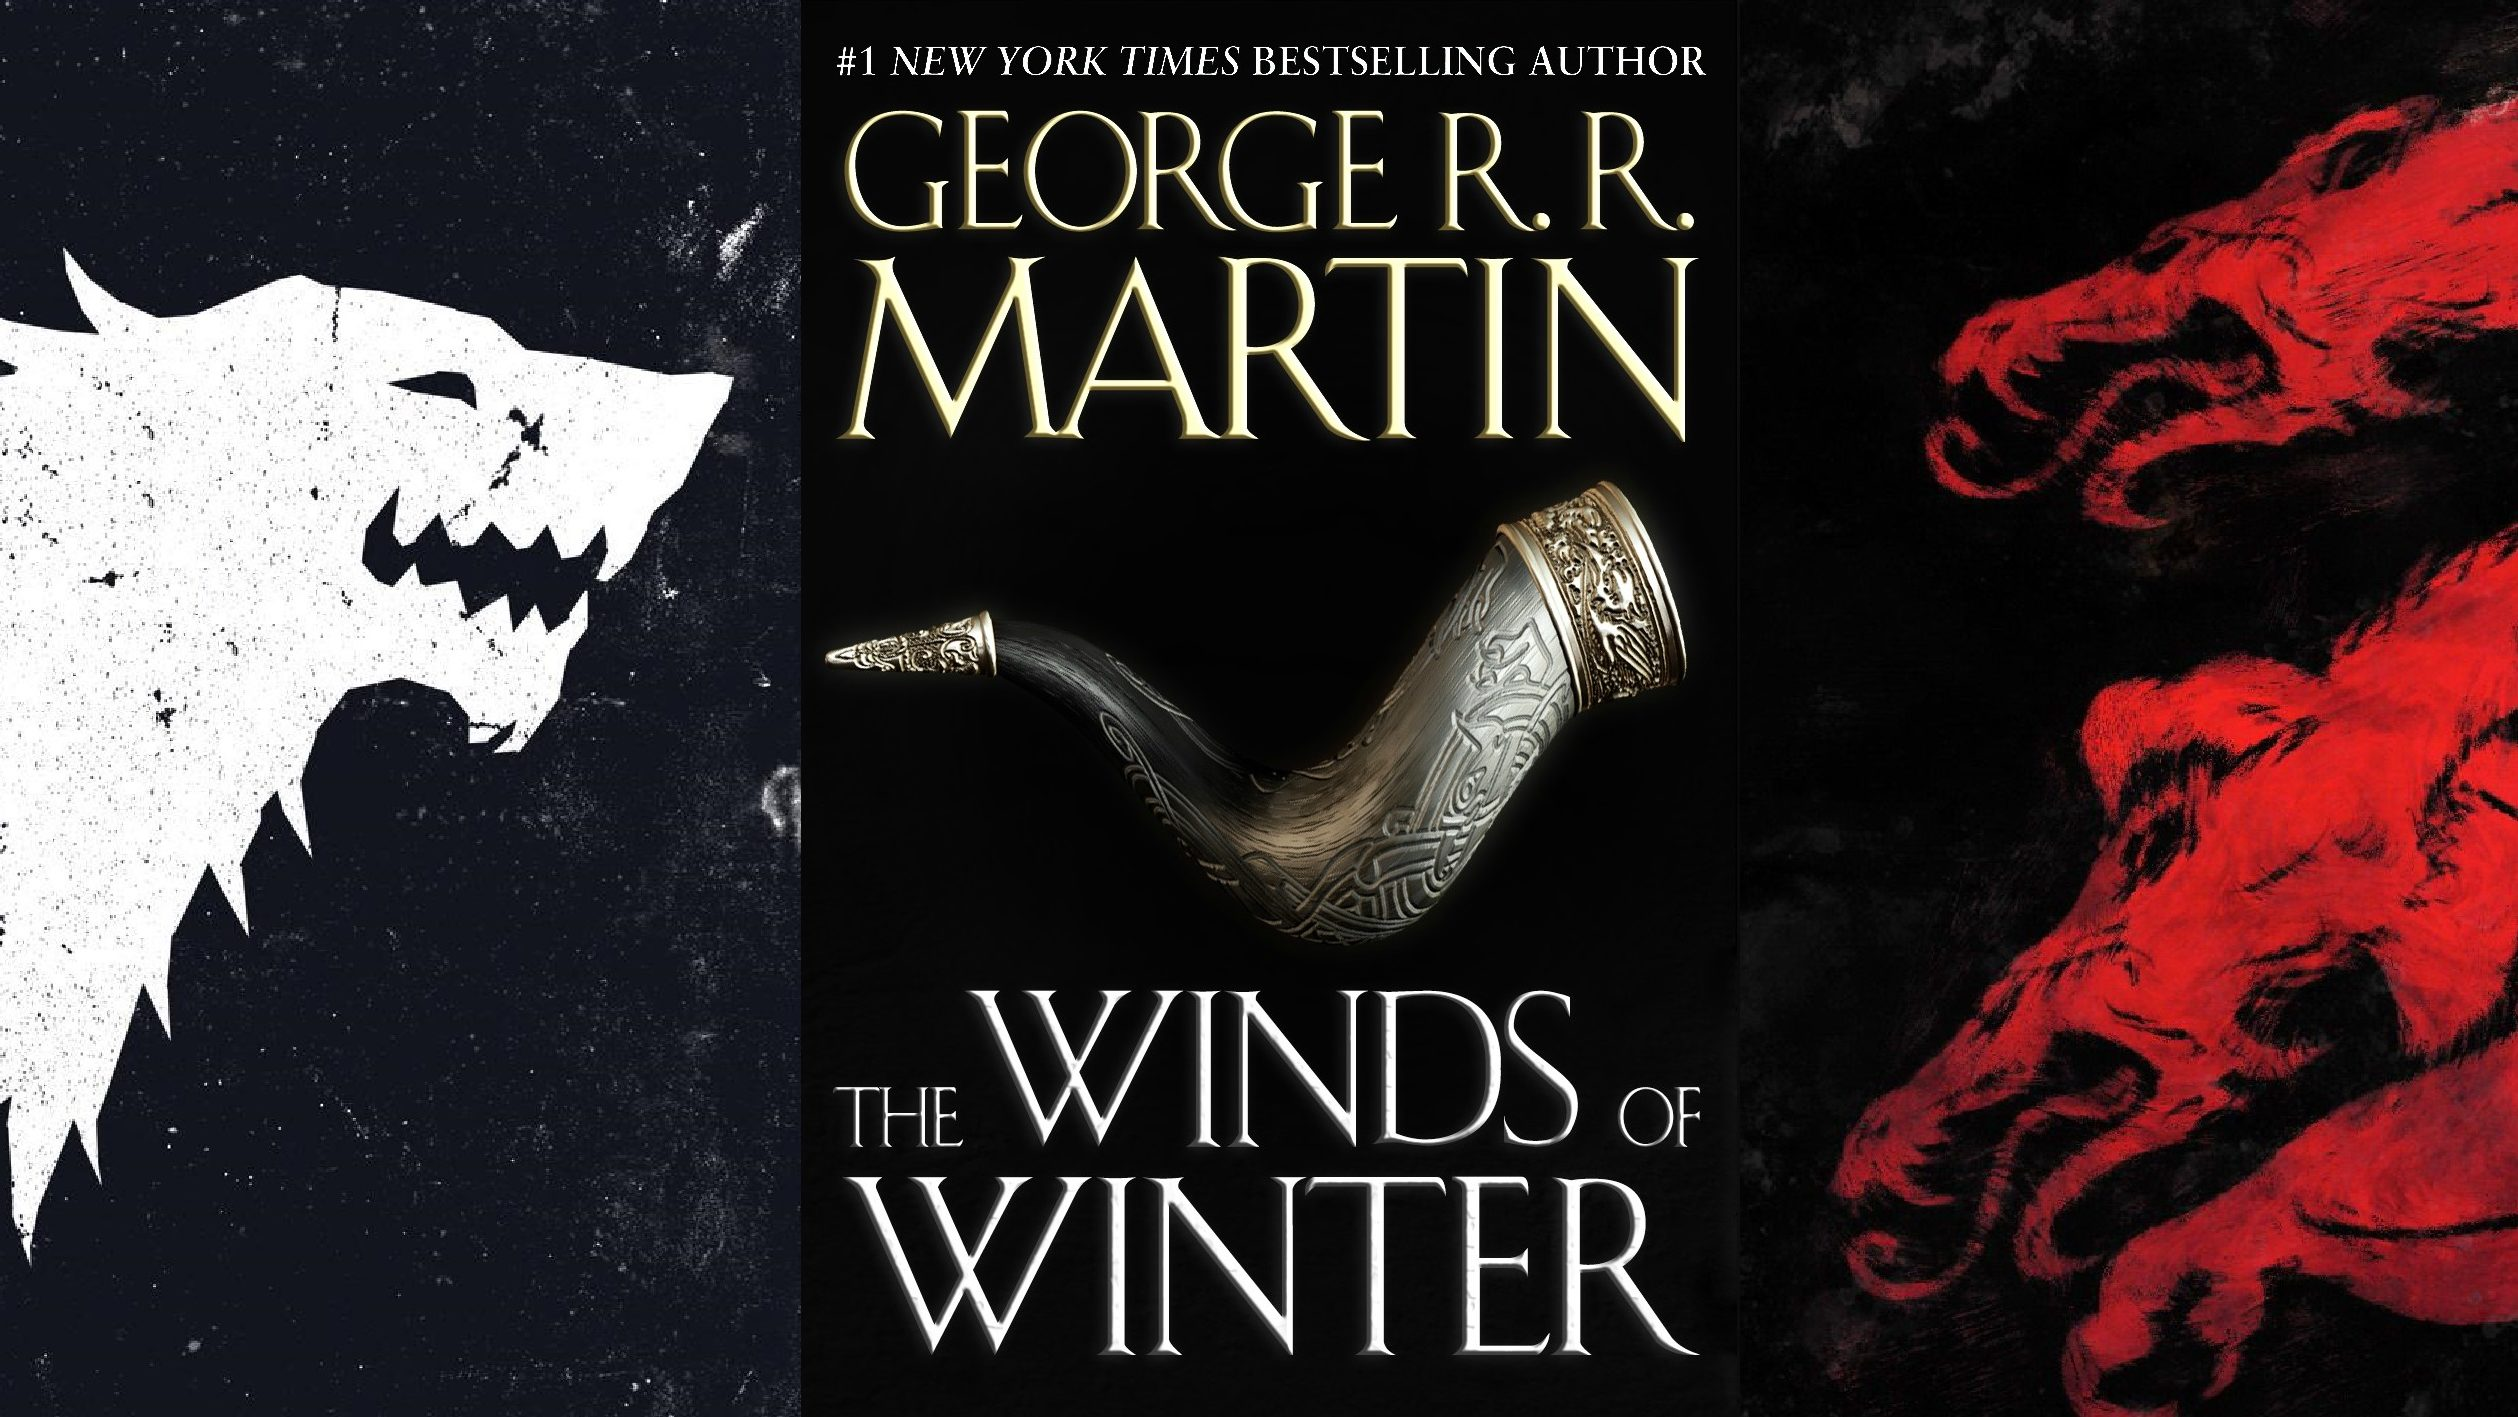 The Winds of Winter is the Top Priority for GRRM